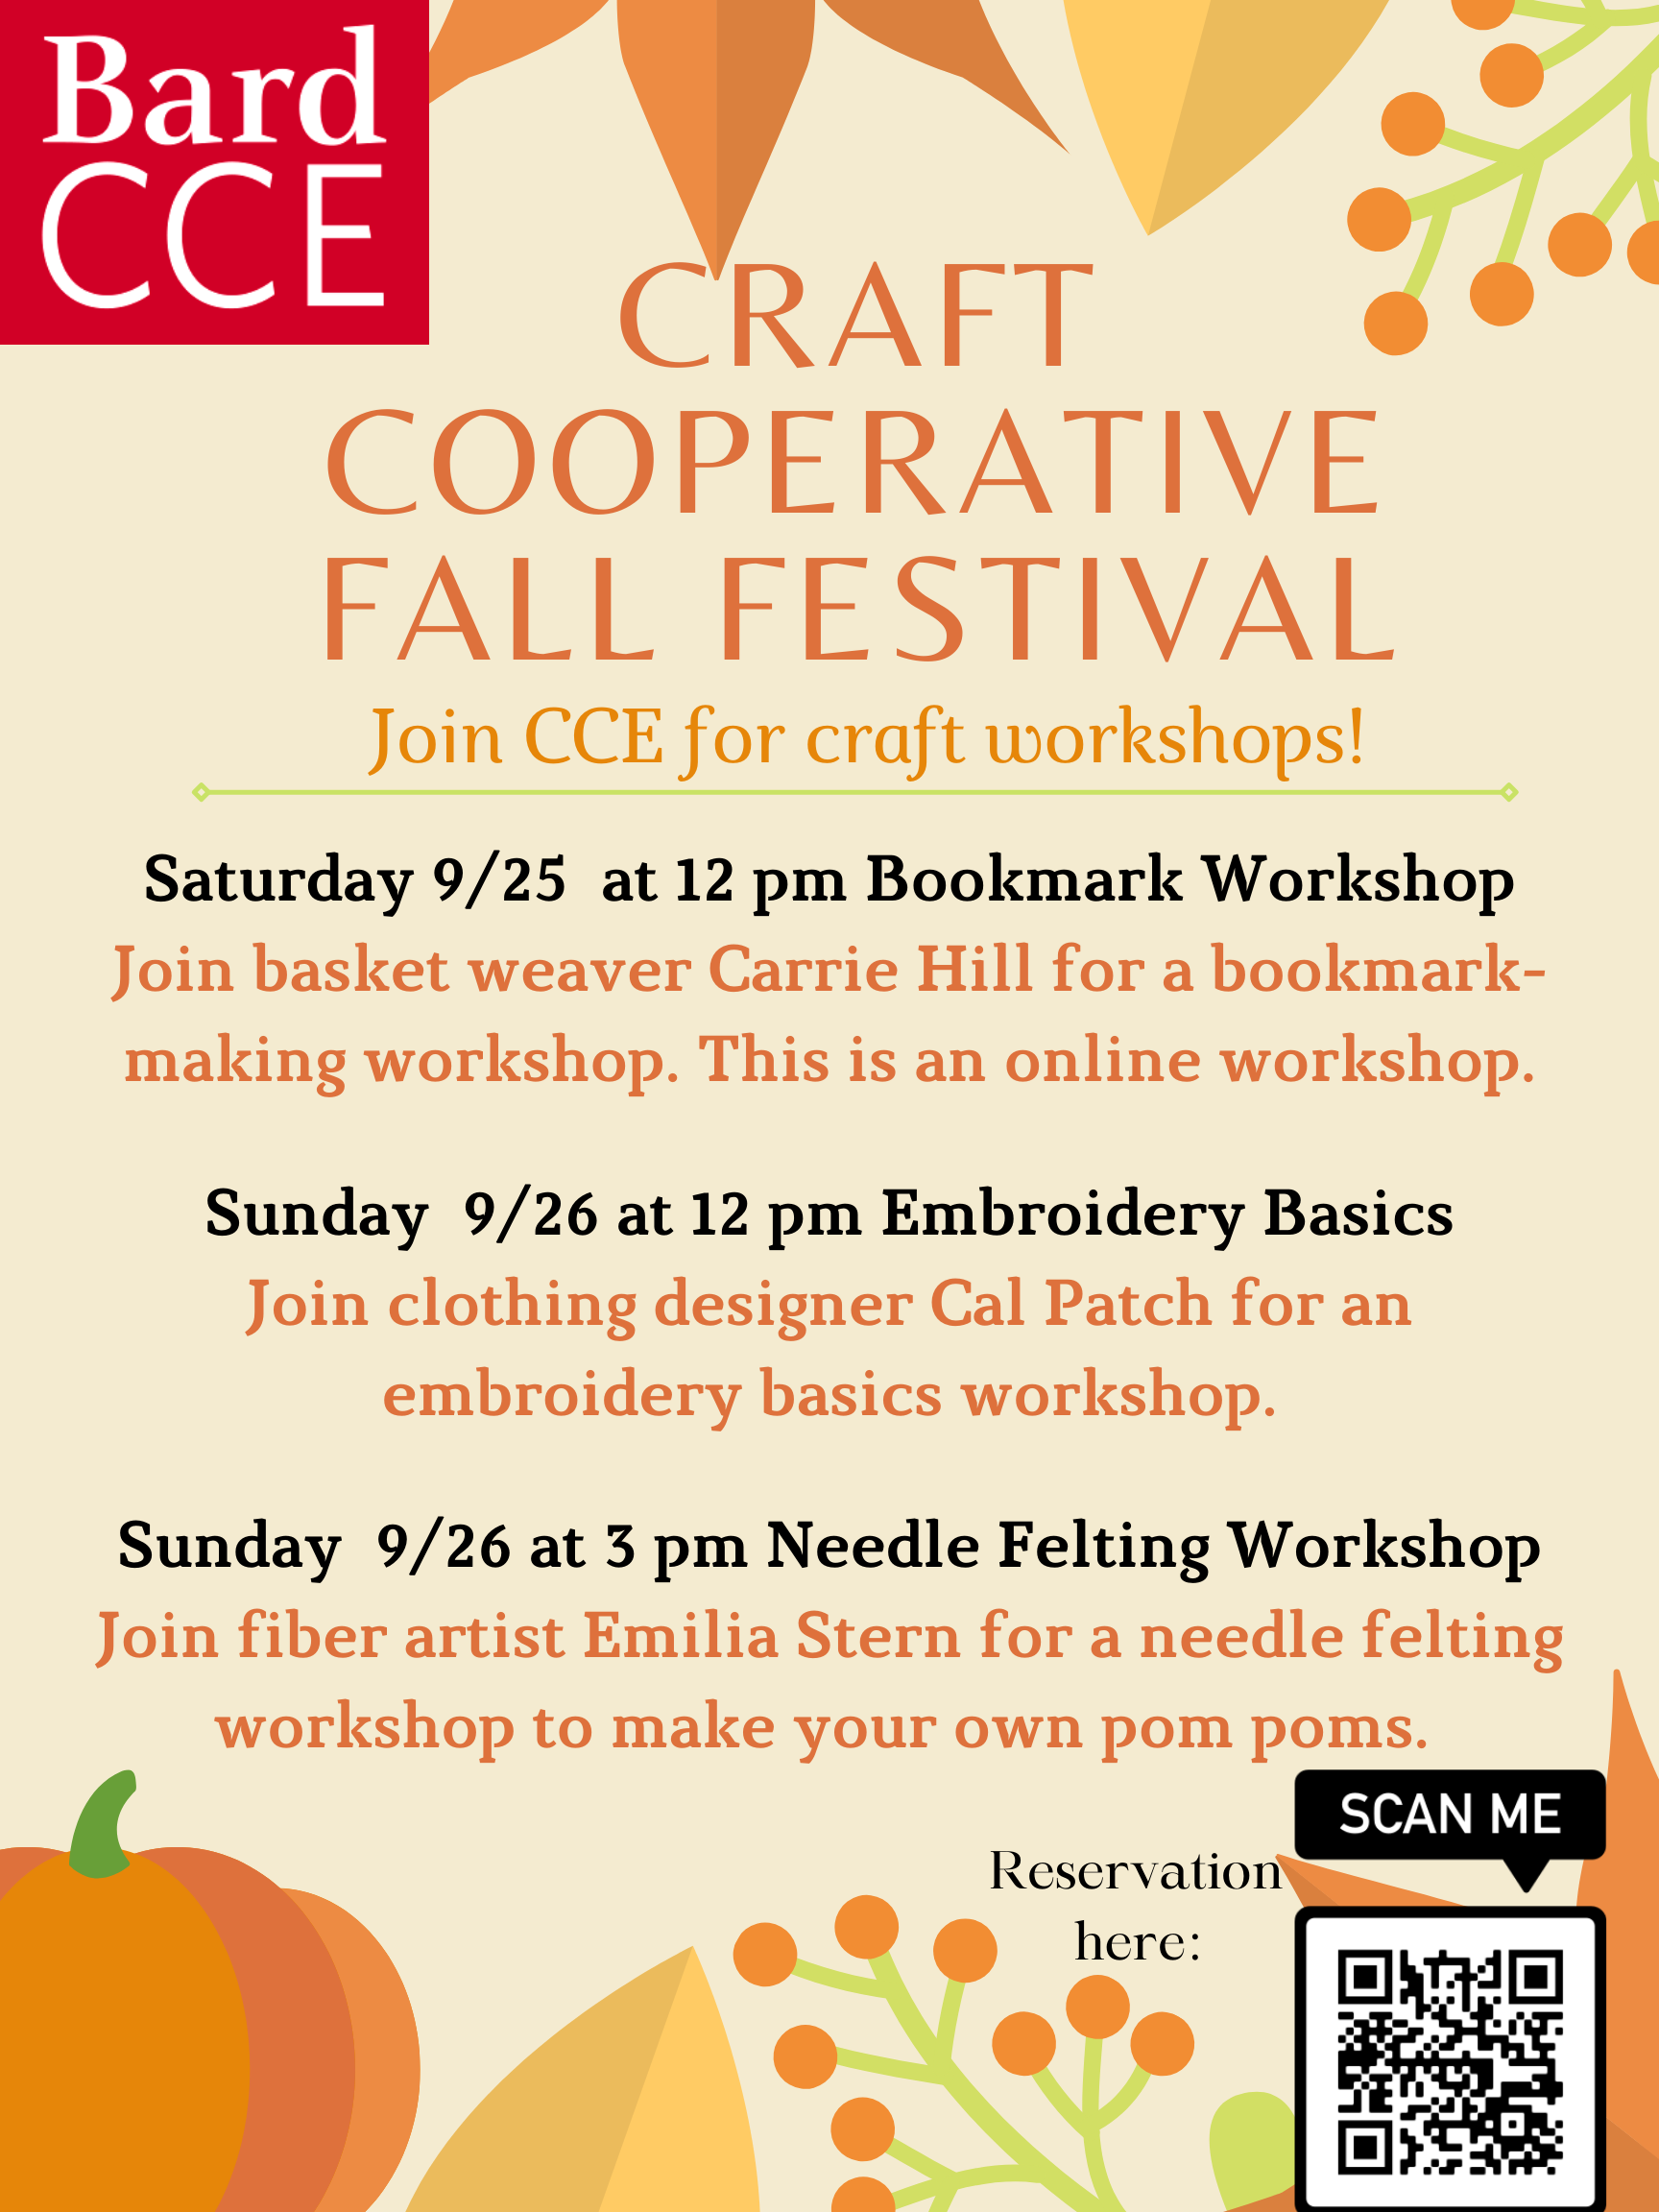 [Craft Cooperative Fall Festival Workshops on Embroidery and Needle Felting]